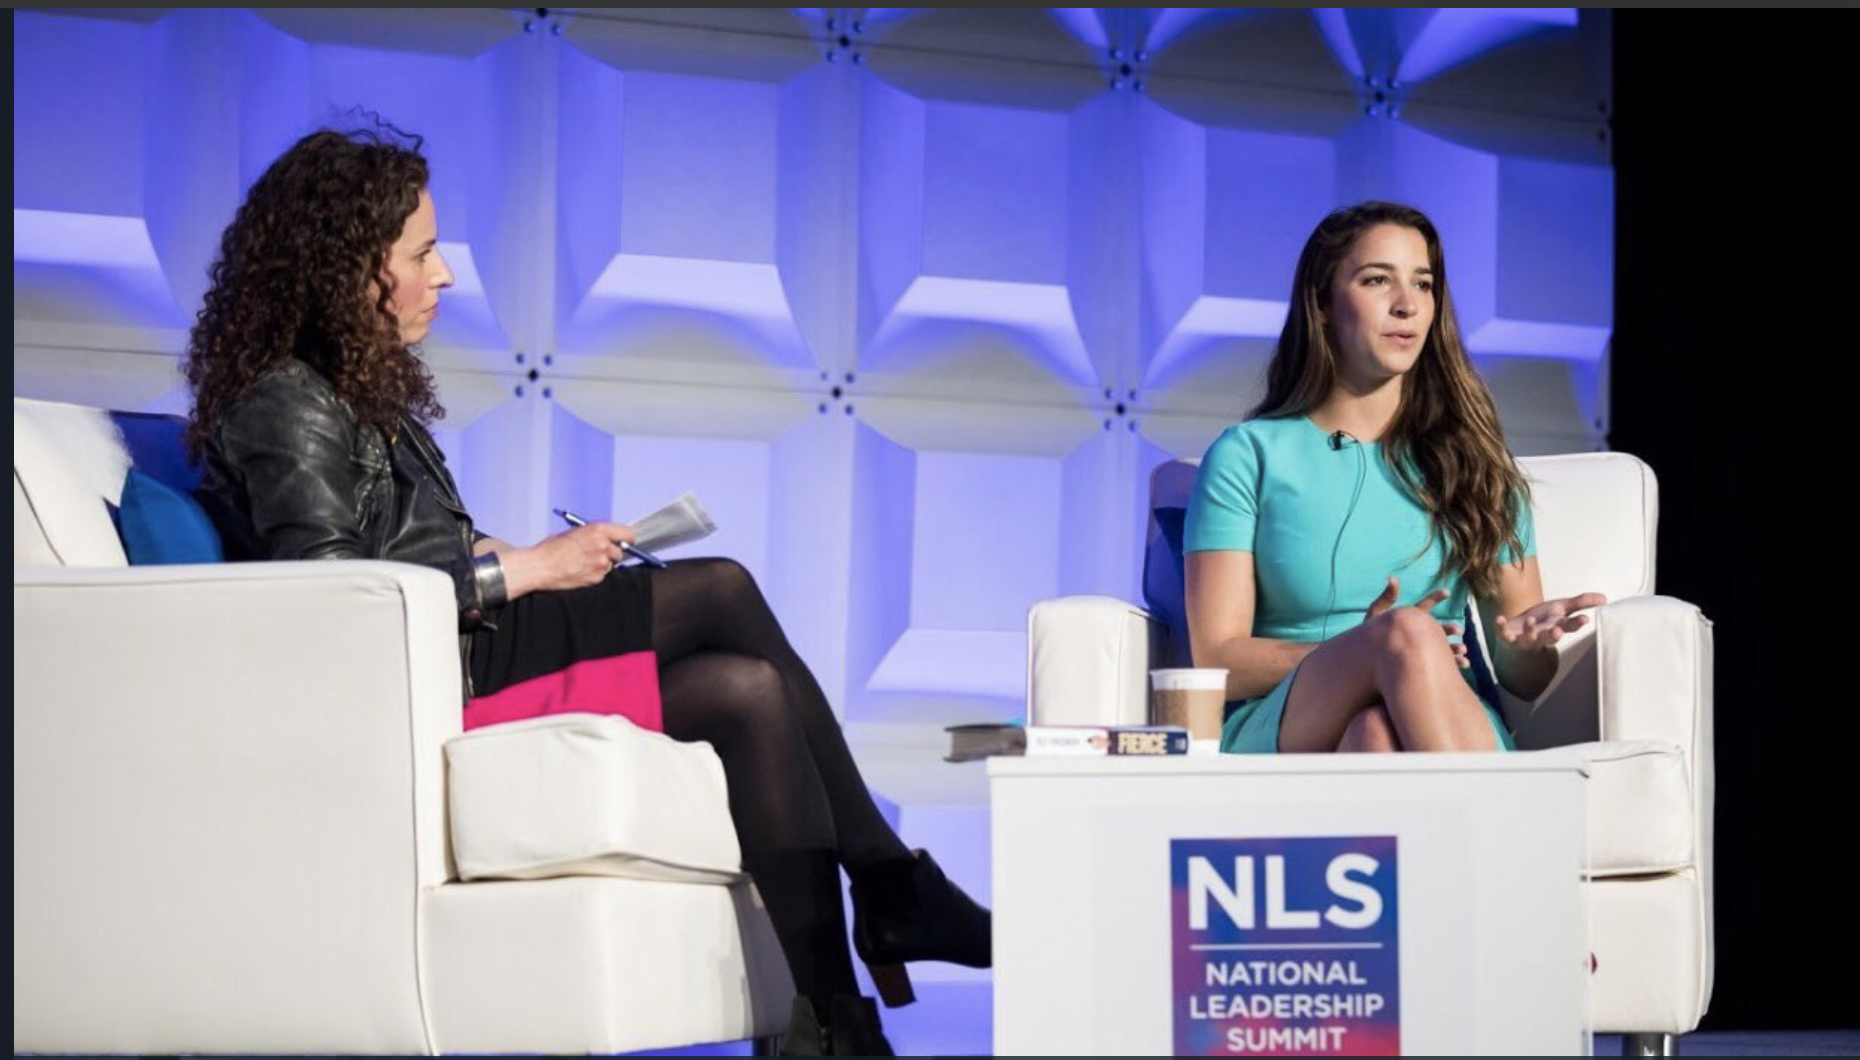 Interviewing Aly Raisman about #MeToo at ADL National Leadership conference